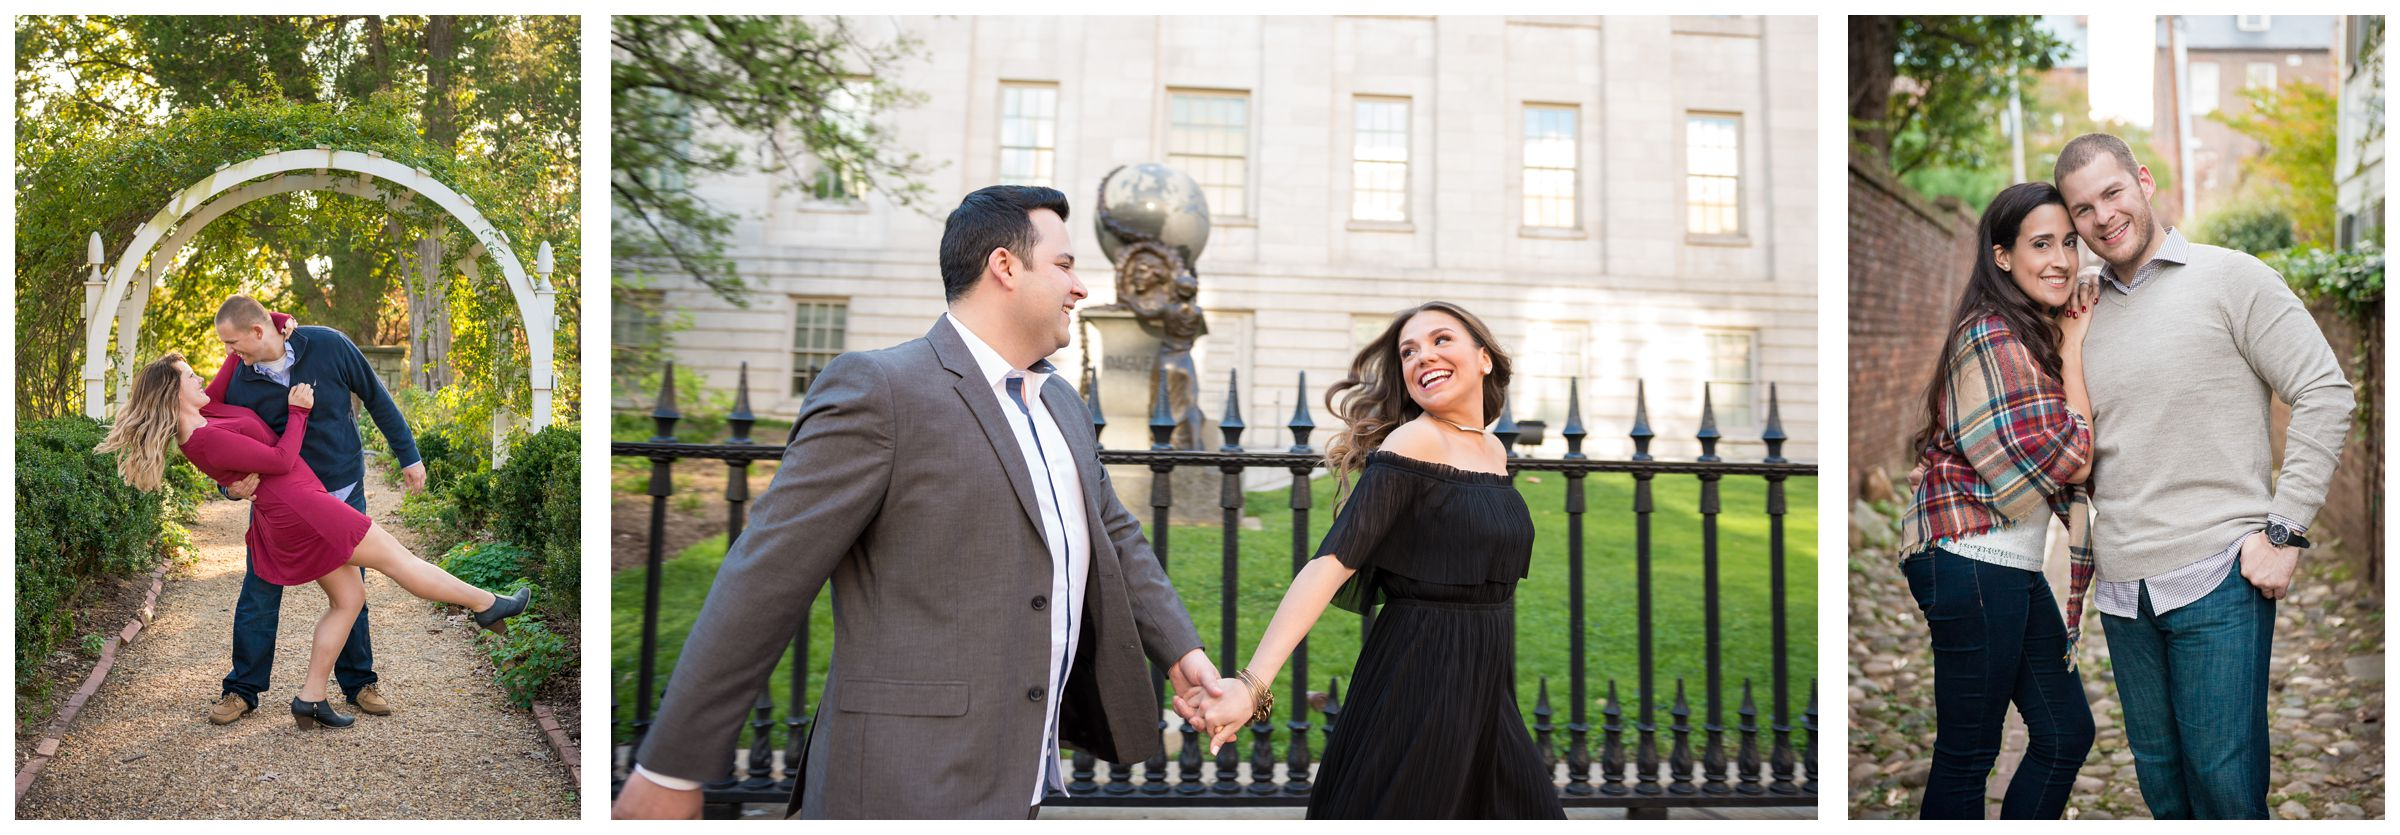 5 tips for a great engagement session